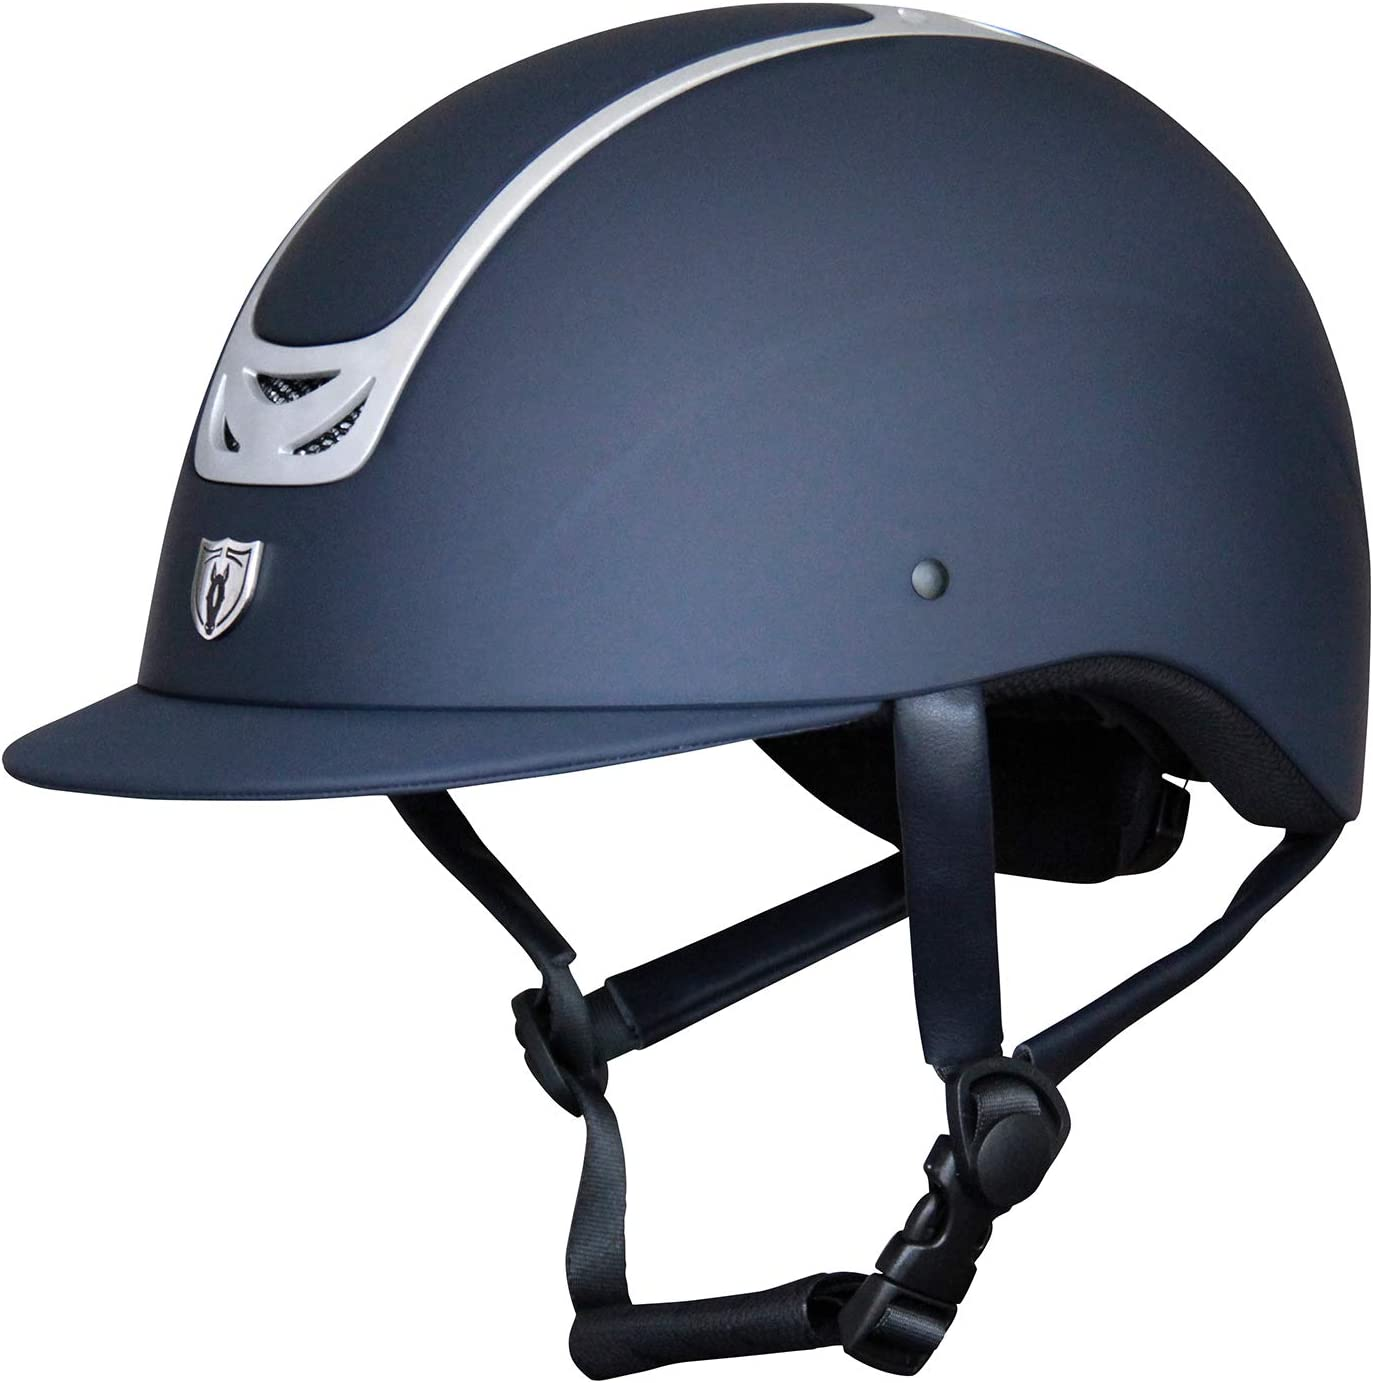 TIPPERARY EQUESTRIAN Horse Riding Helmet Style Royal Sale SALE% OFF - English Max 59% OFF